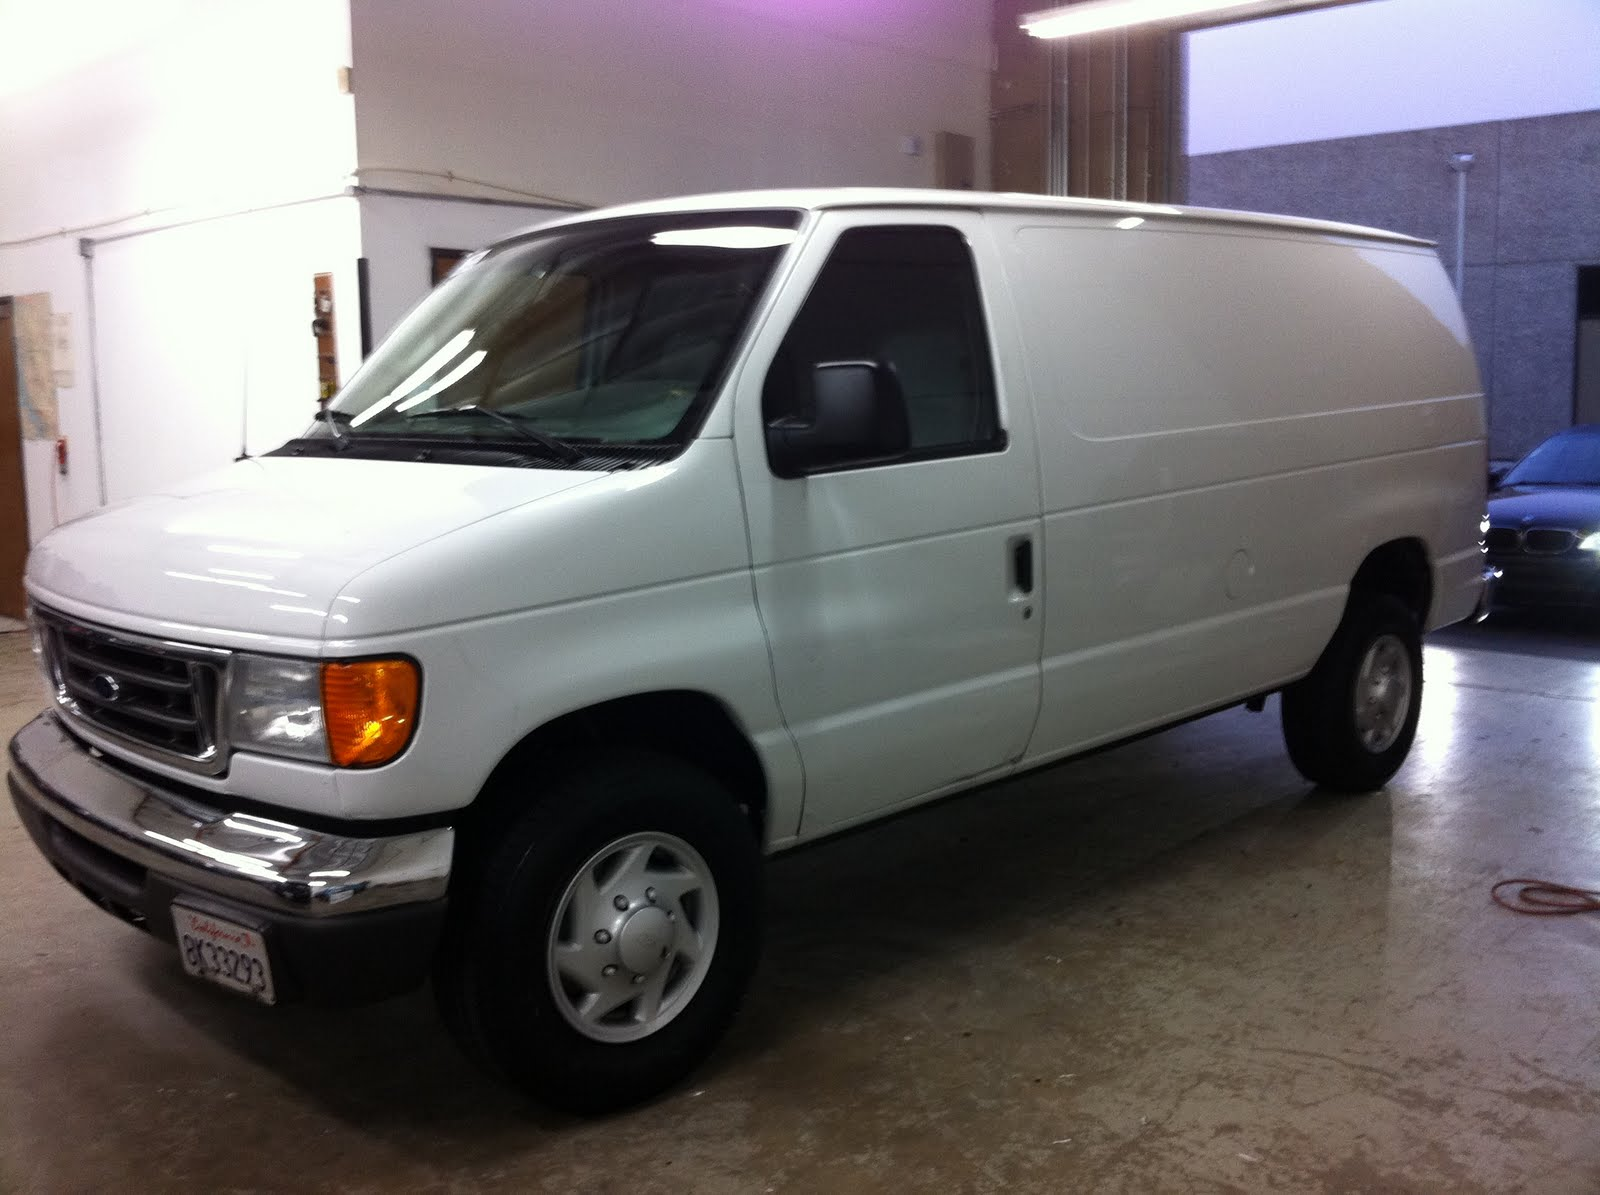 Heres a nice 2006 Ford E350